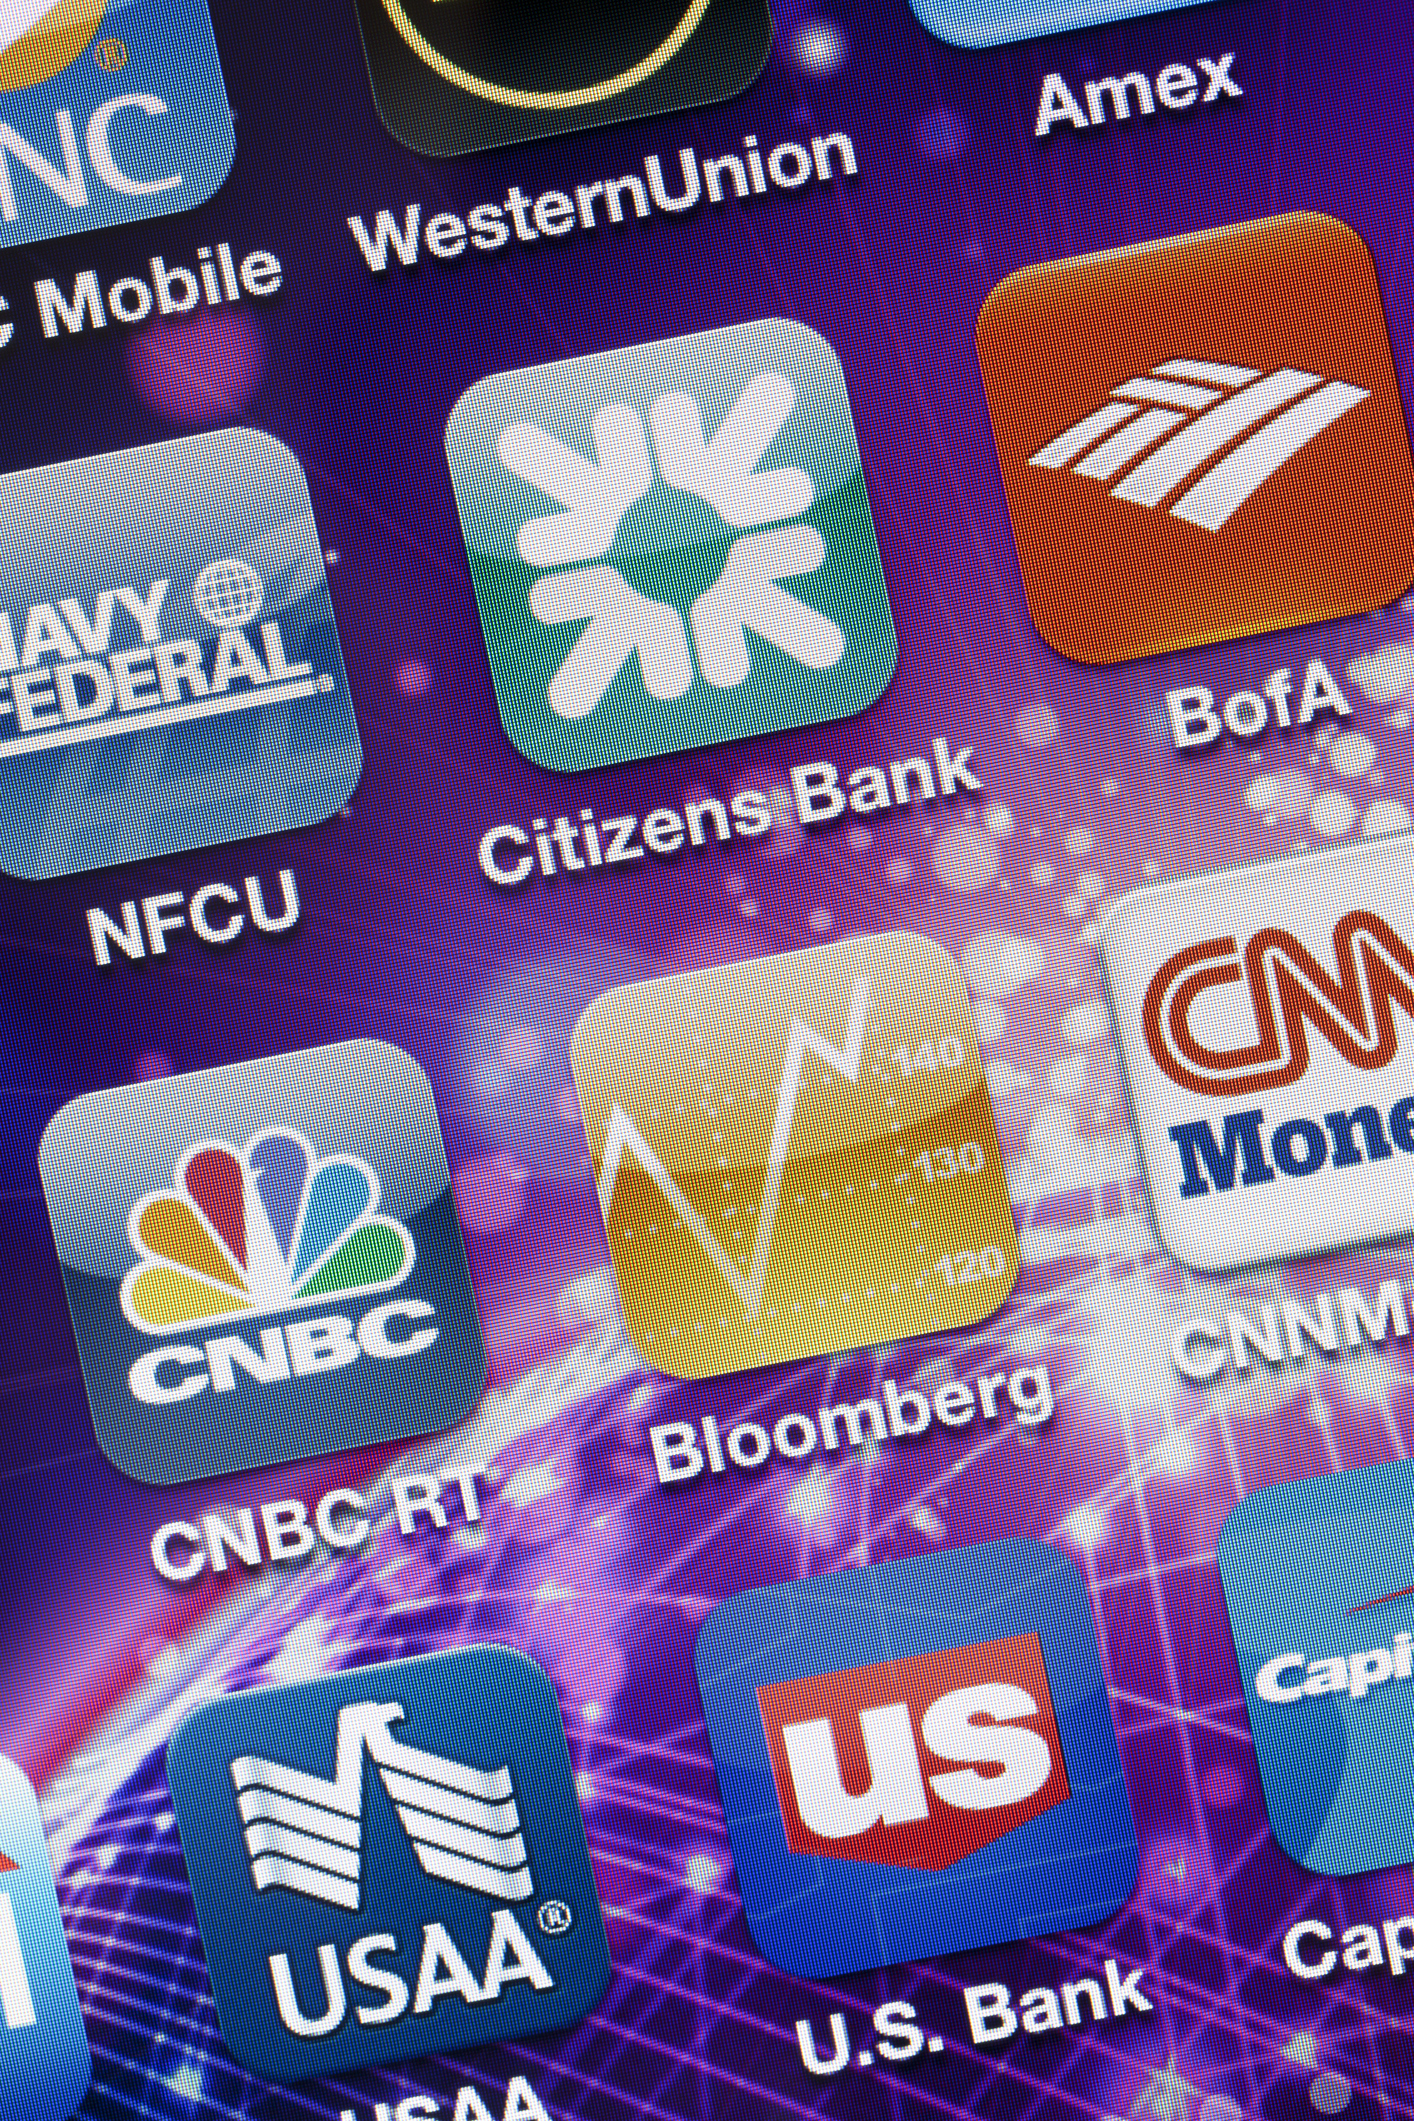 Finance Apps on Apple iPhone 4 Screen